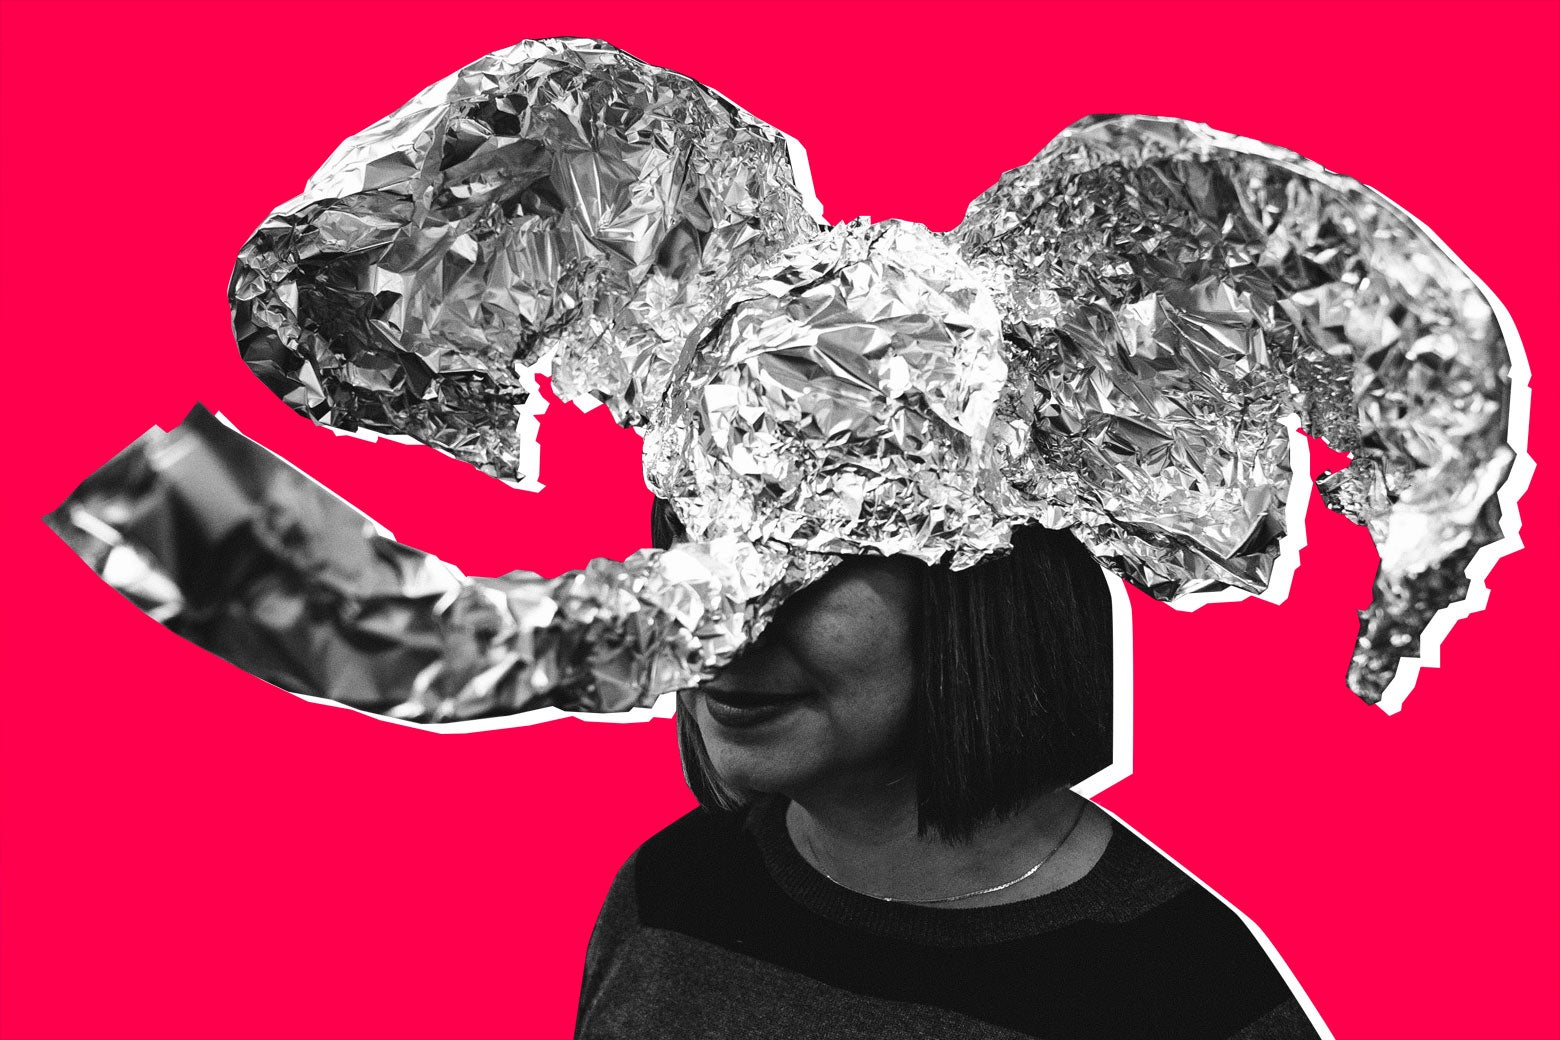 A GOP elephant hat made of tinfoil on a woman who looks very conservative.